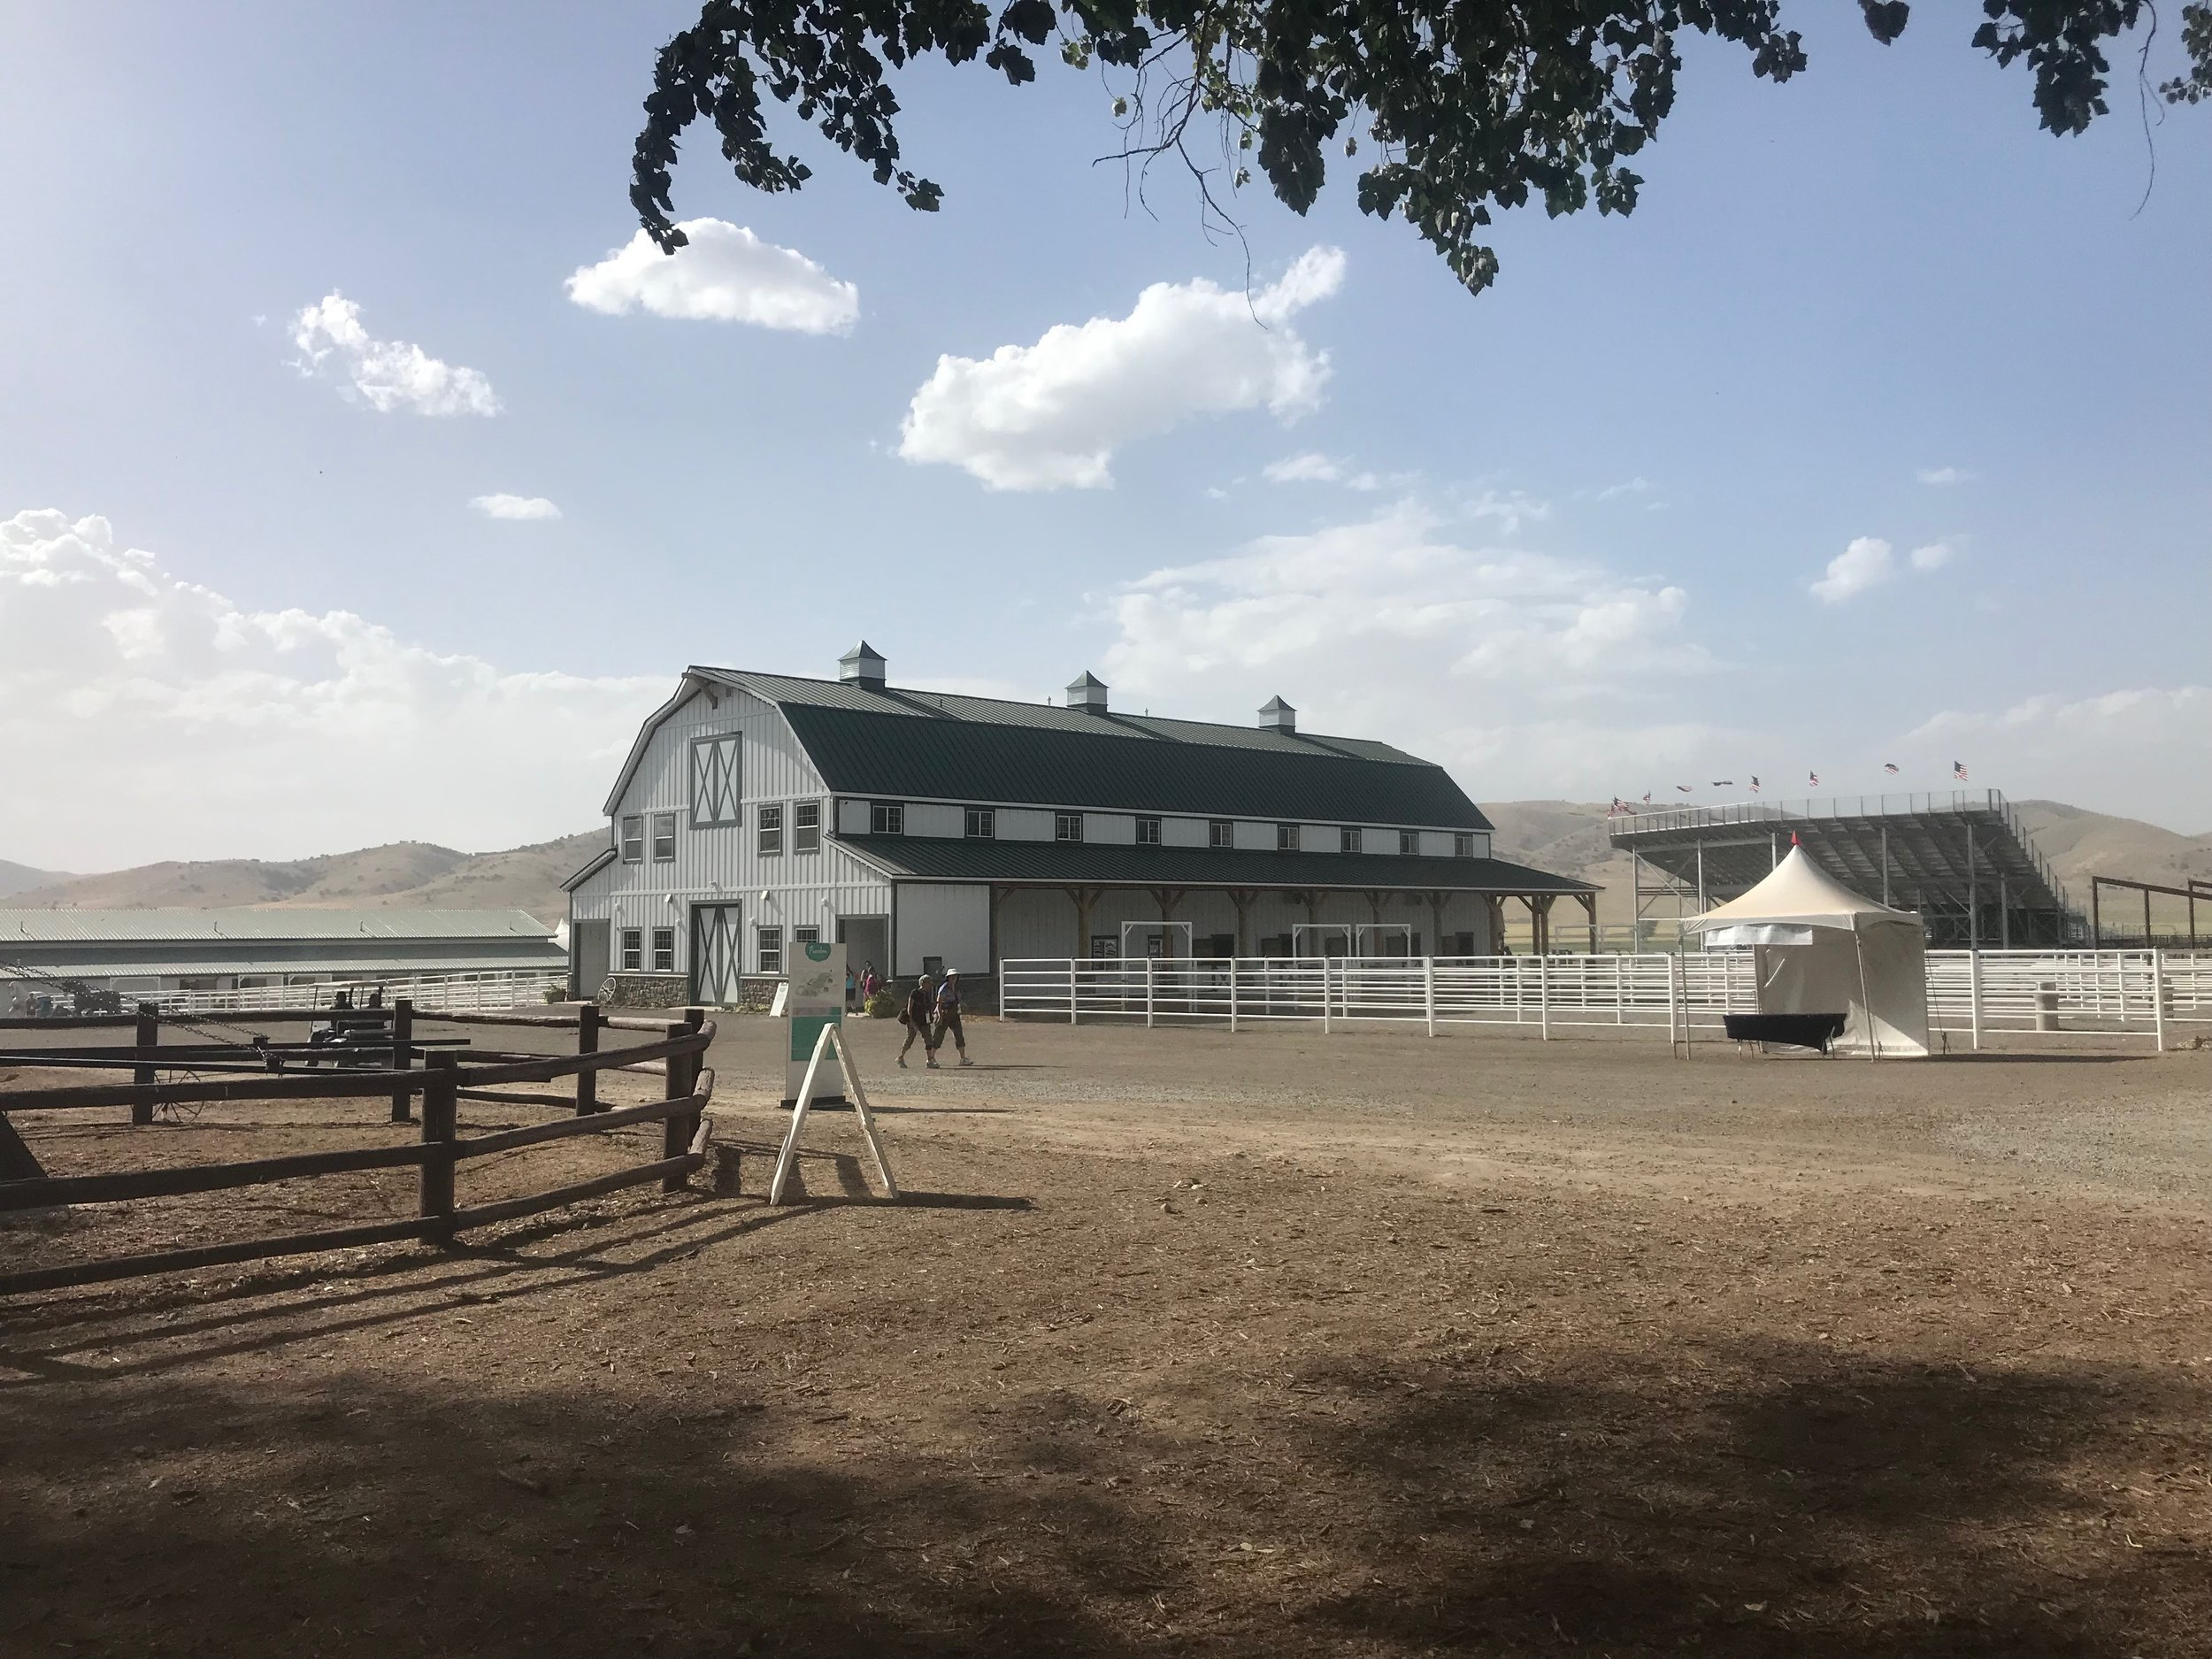 One of the barns at the Young Living Whispering Springs Farm in Mona, Utah.